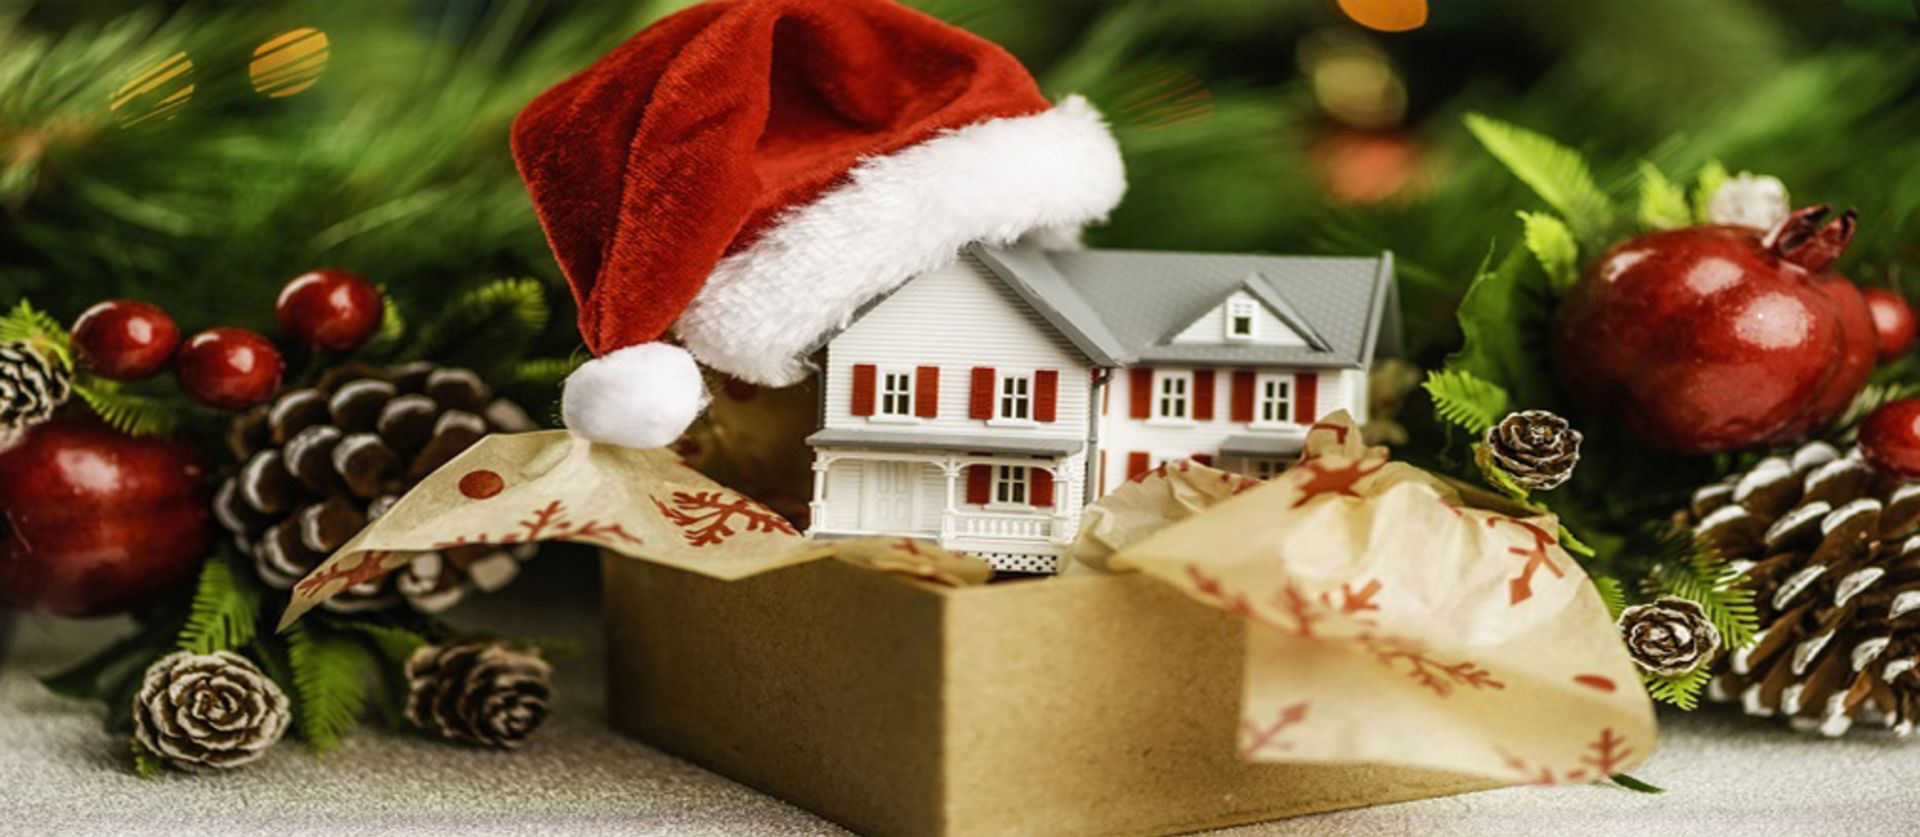 7 Reasons to List Your House For Sale This Holiday Season